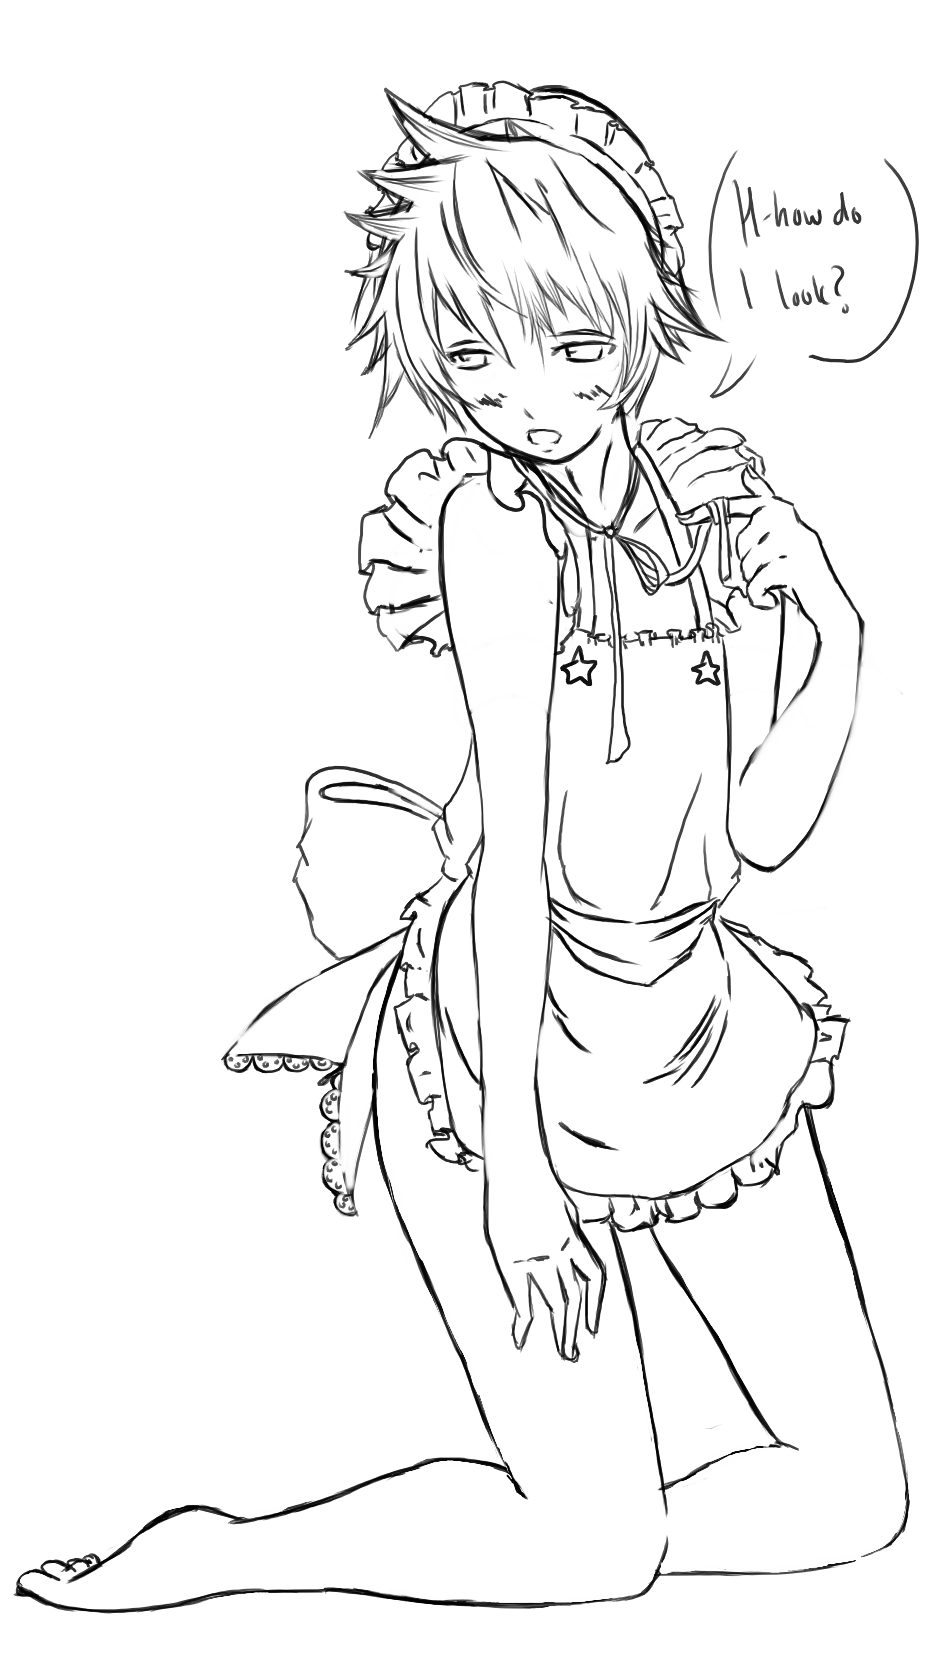 Anime Maid Outfit Drawings Sketch Coloring Page